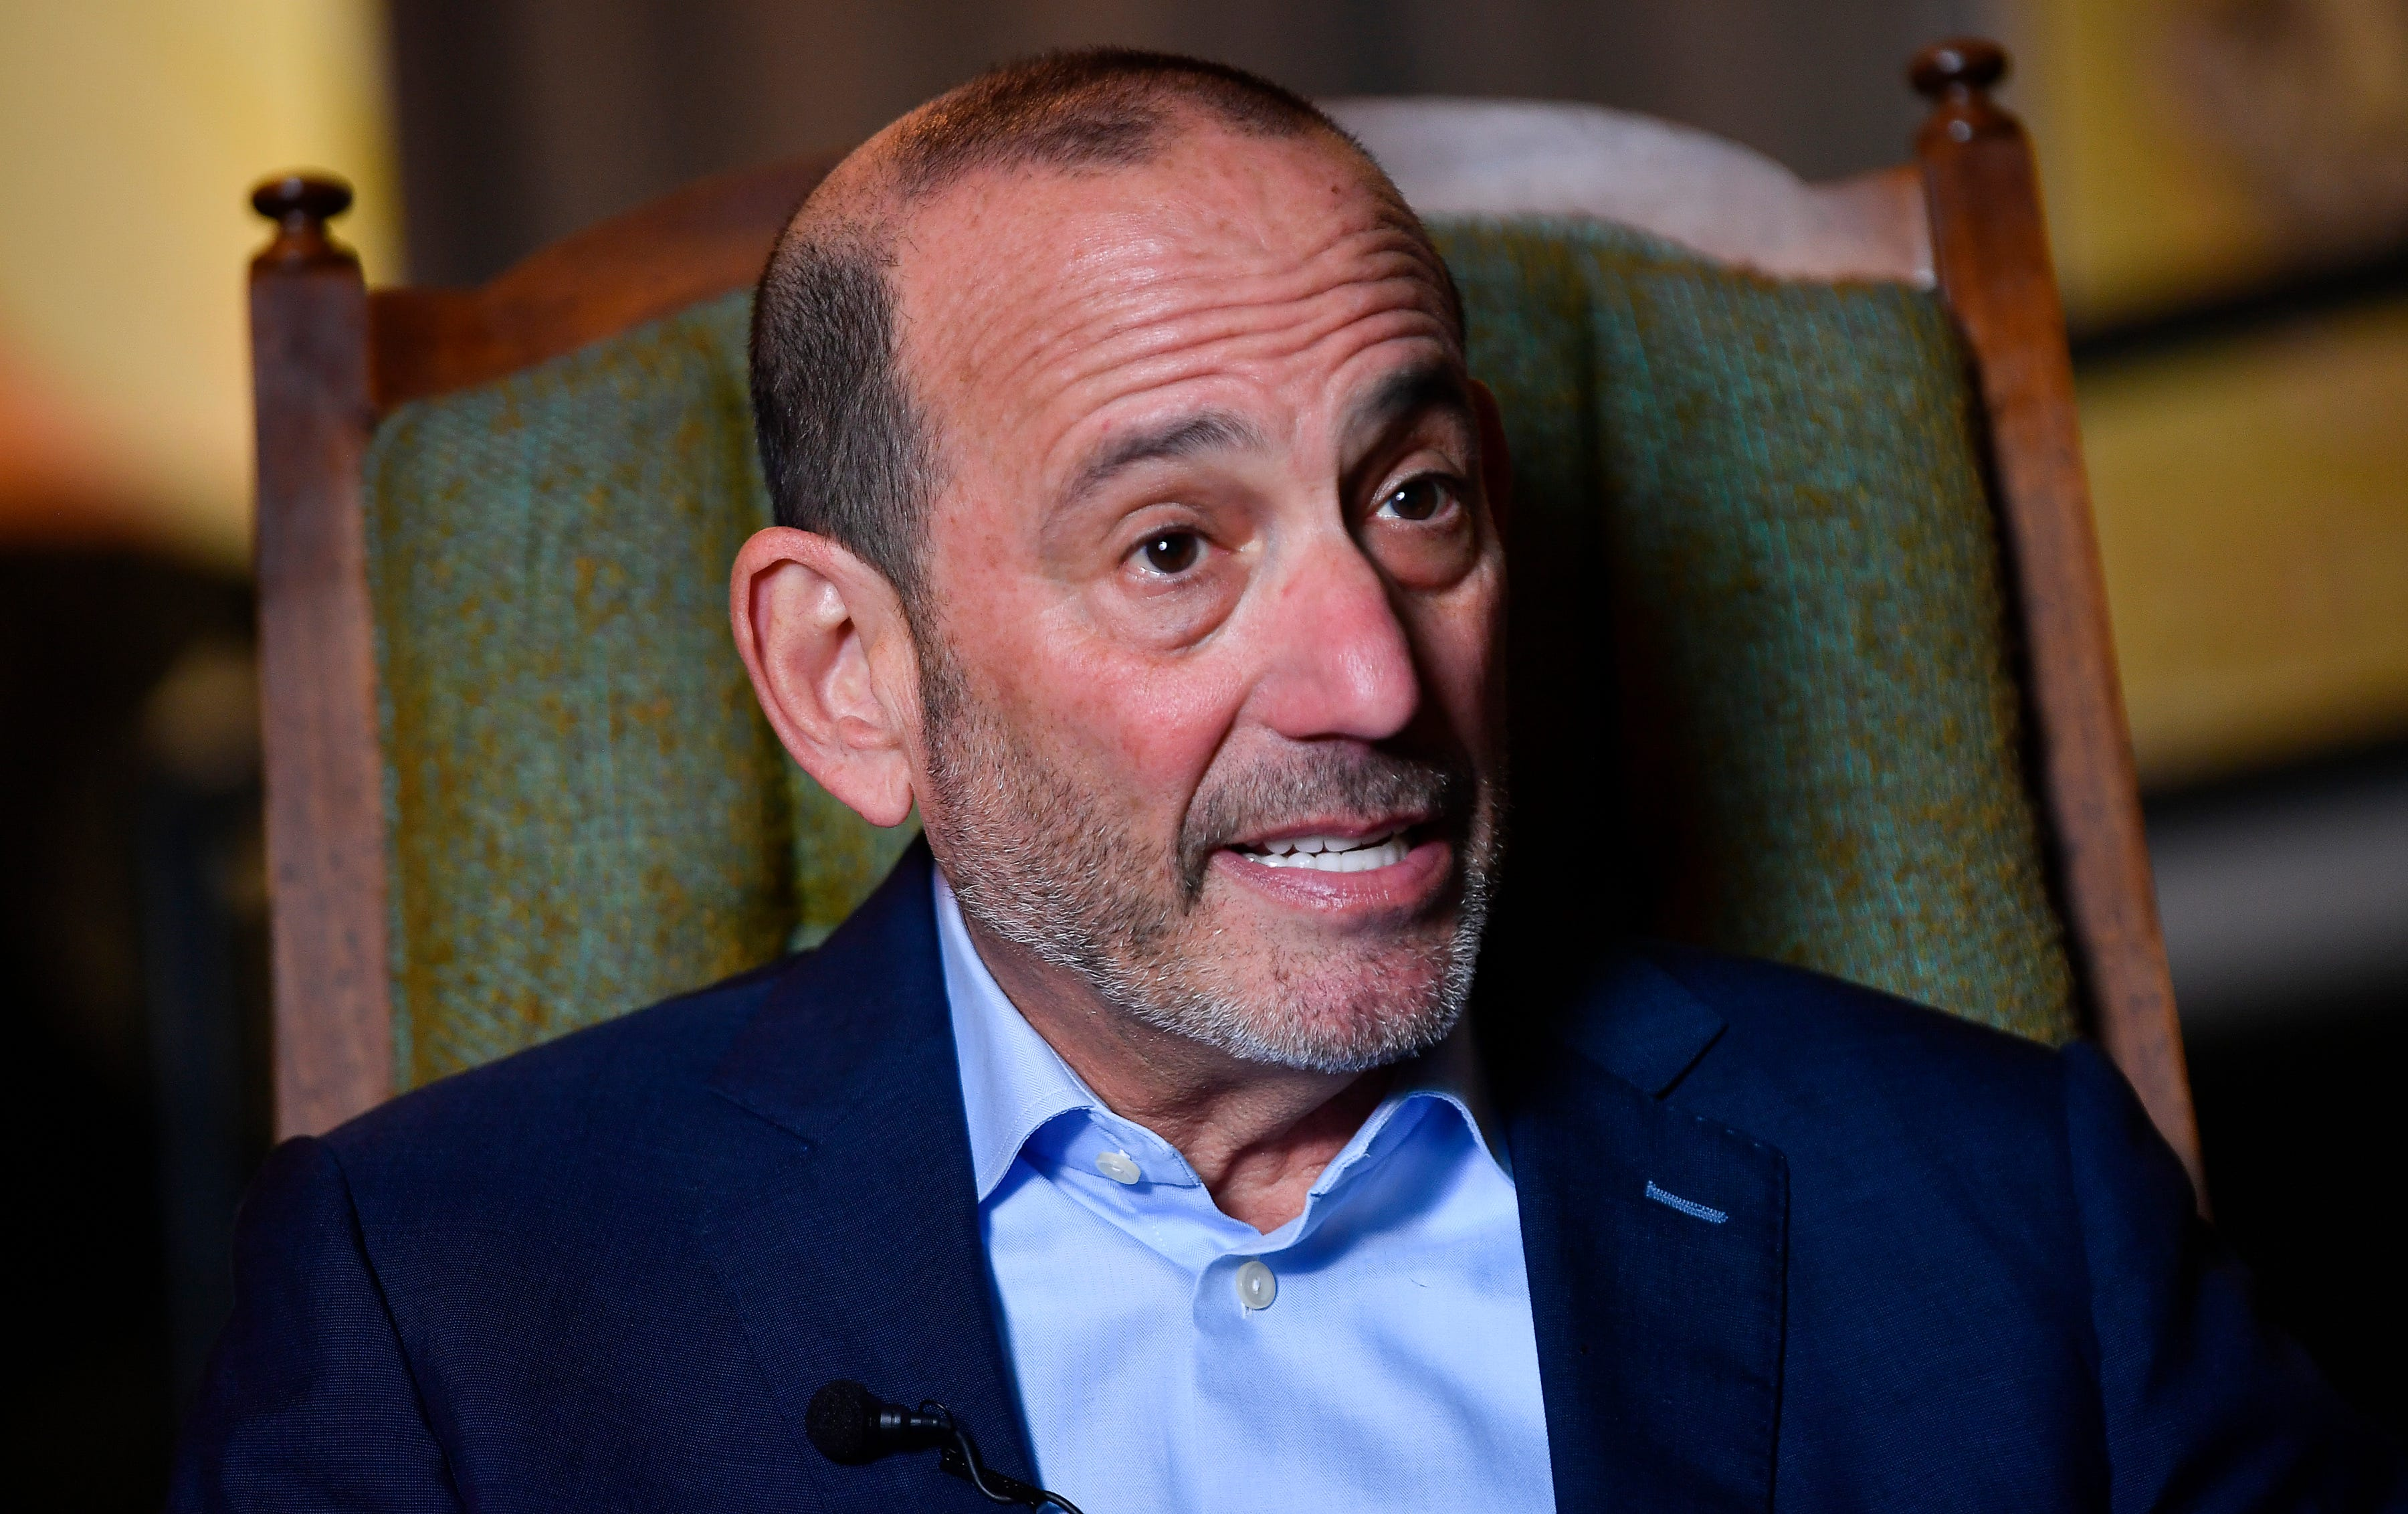 MLS is 'still very much a growth story,' says commissioner Don Garber